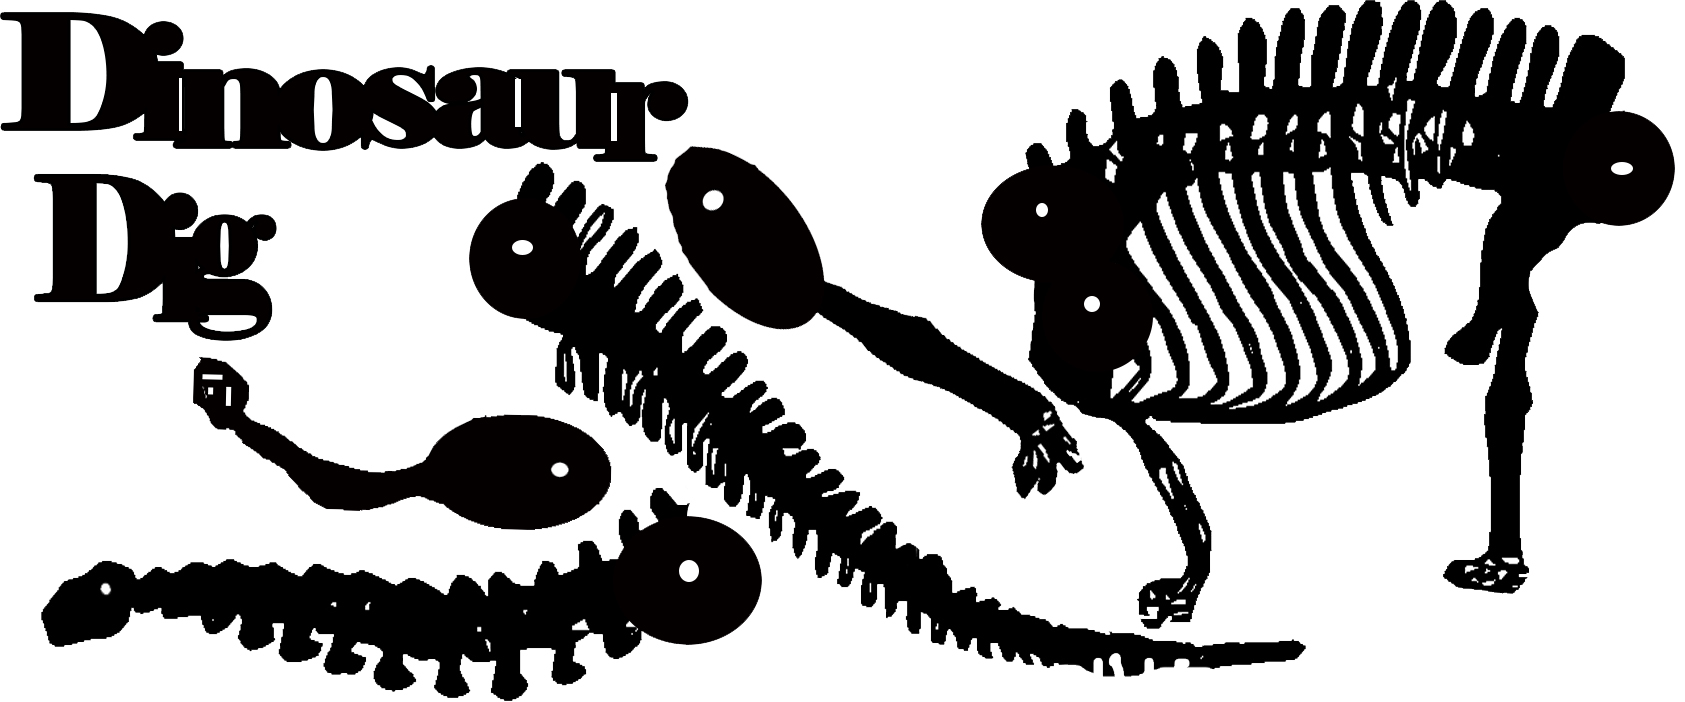 Dinosaur diplodicus skeleton Large 250 x 120  sold individually